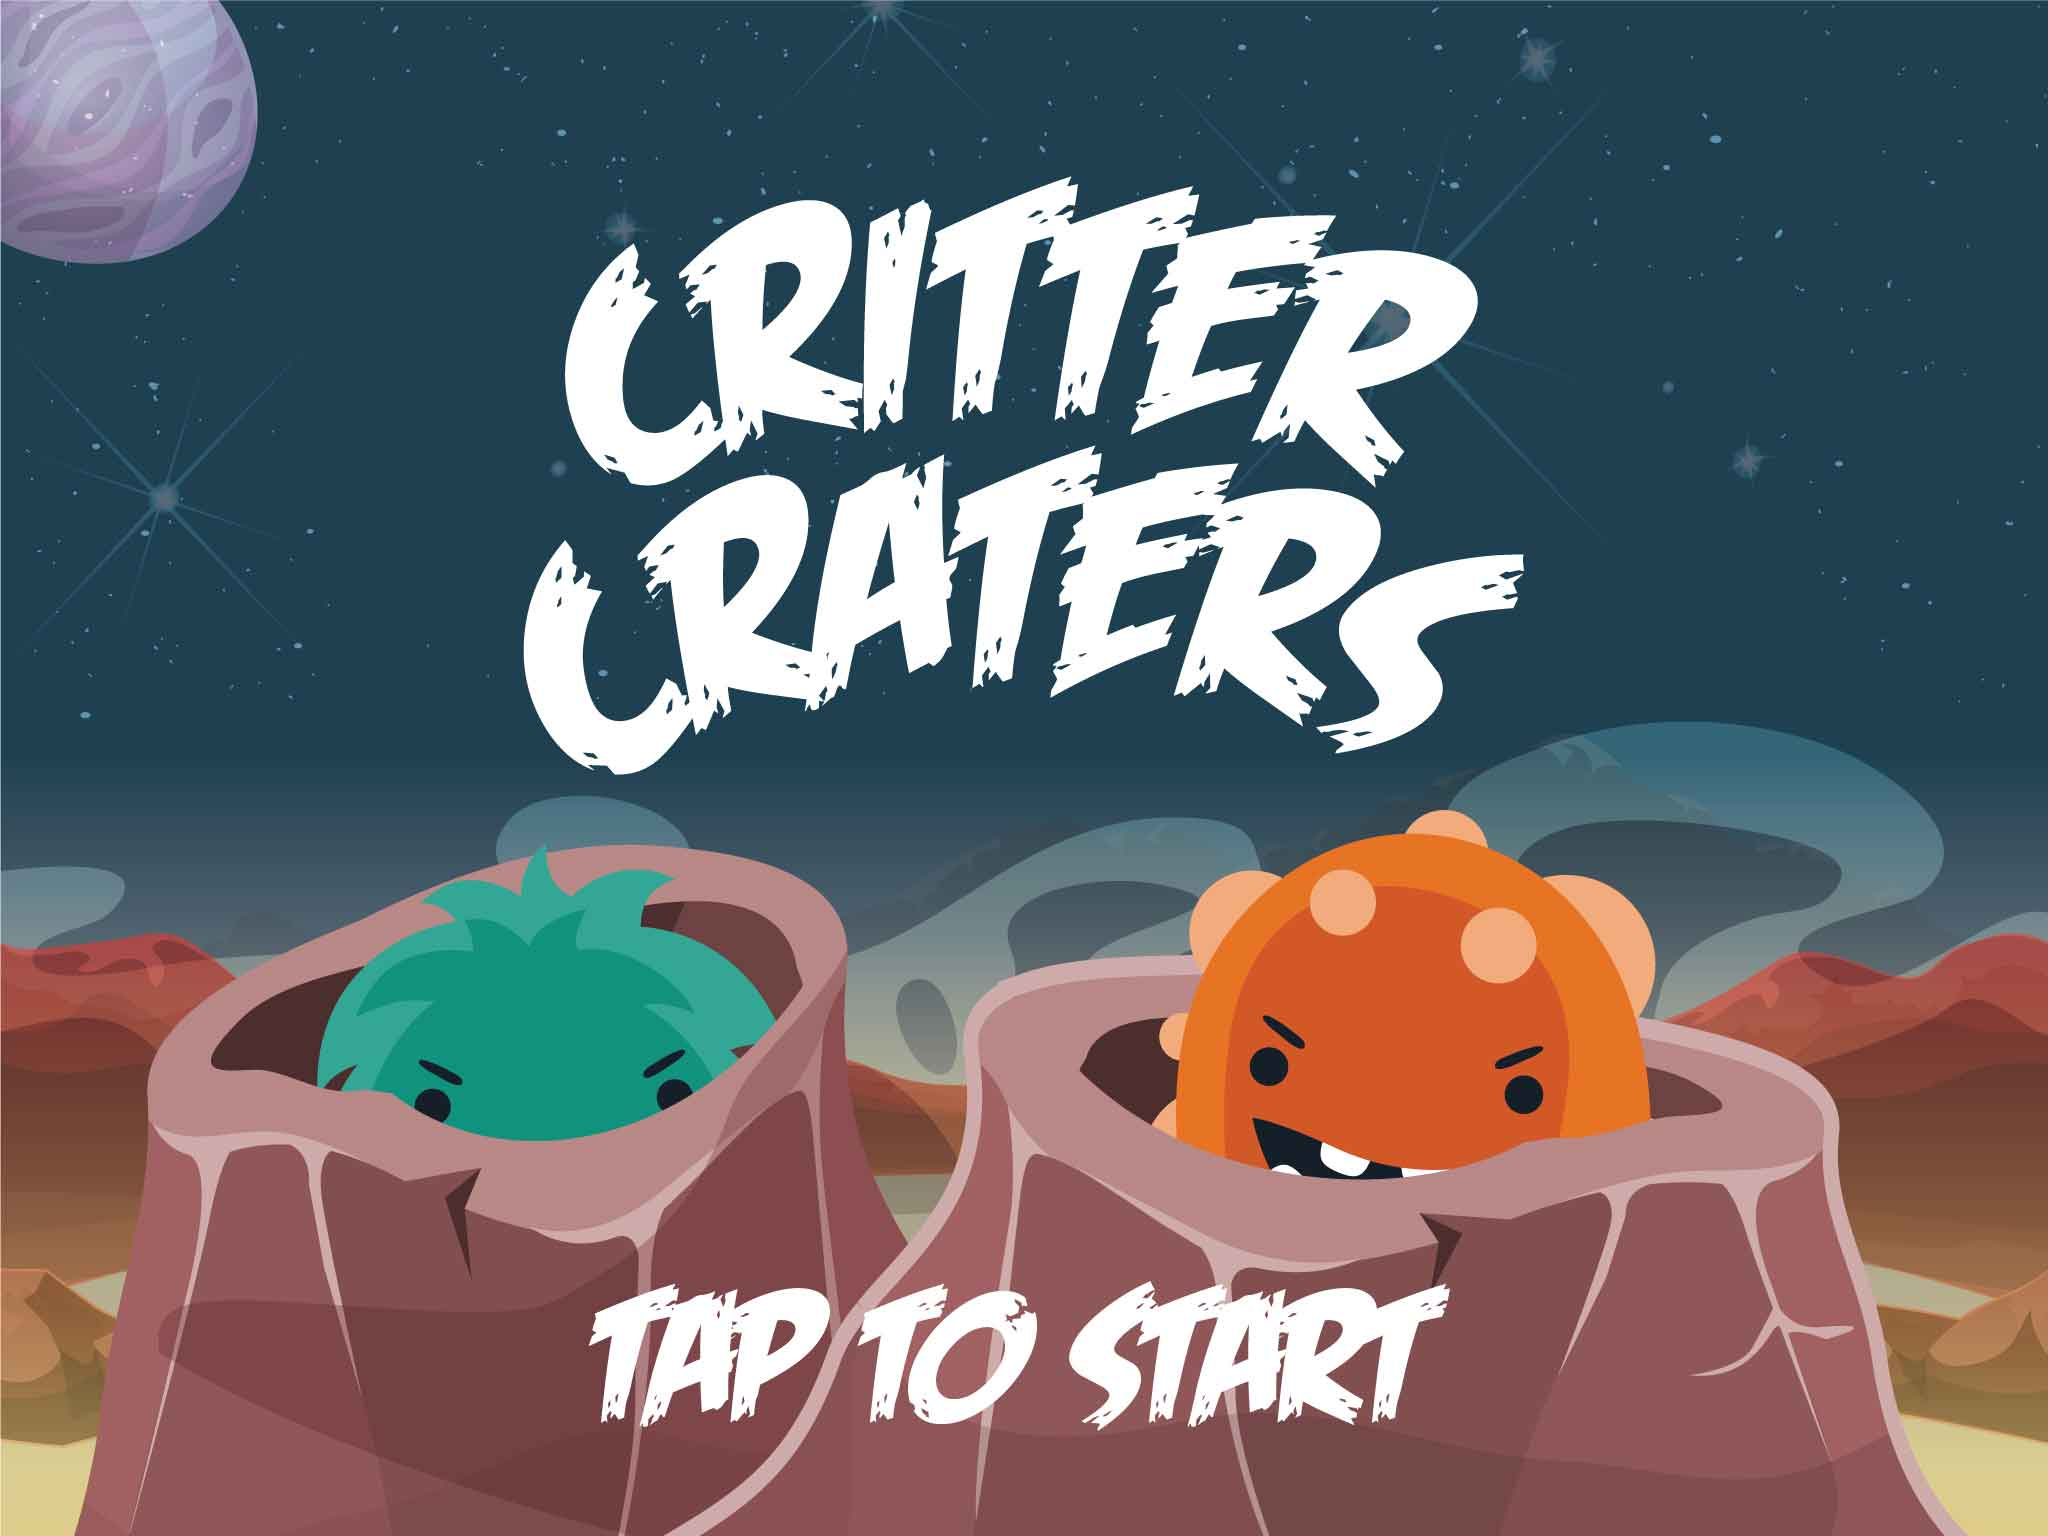 Title screen for iPad educational game Critter Craters.